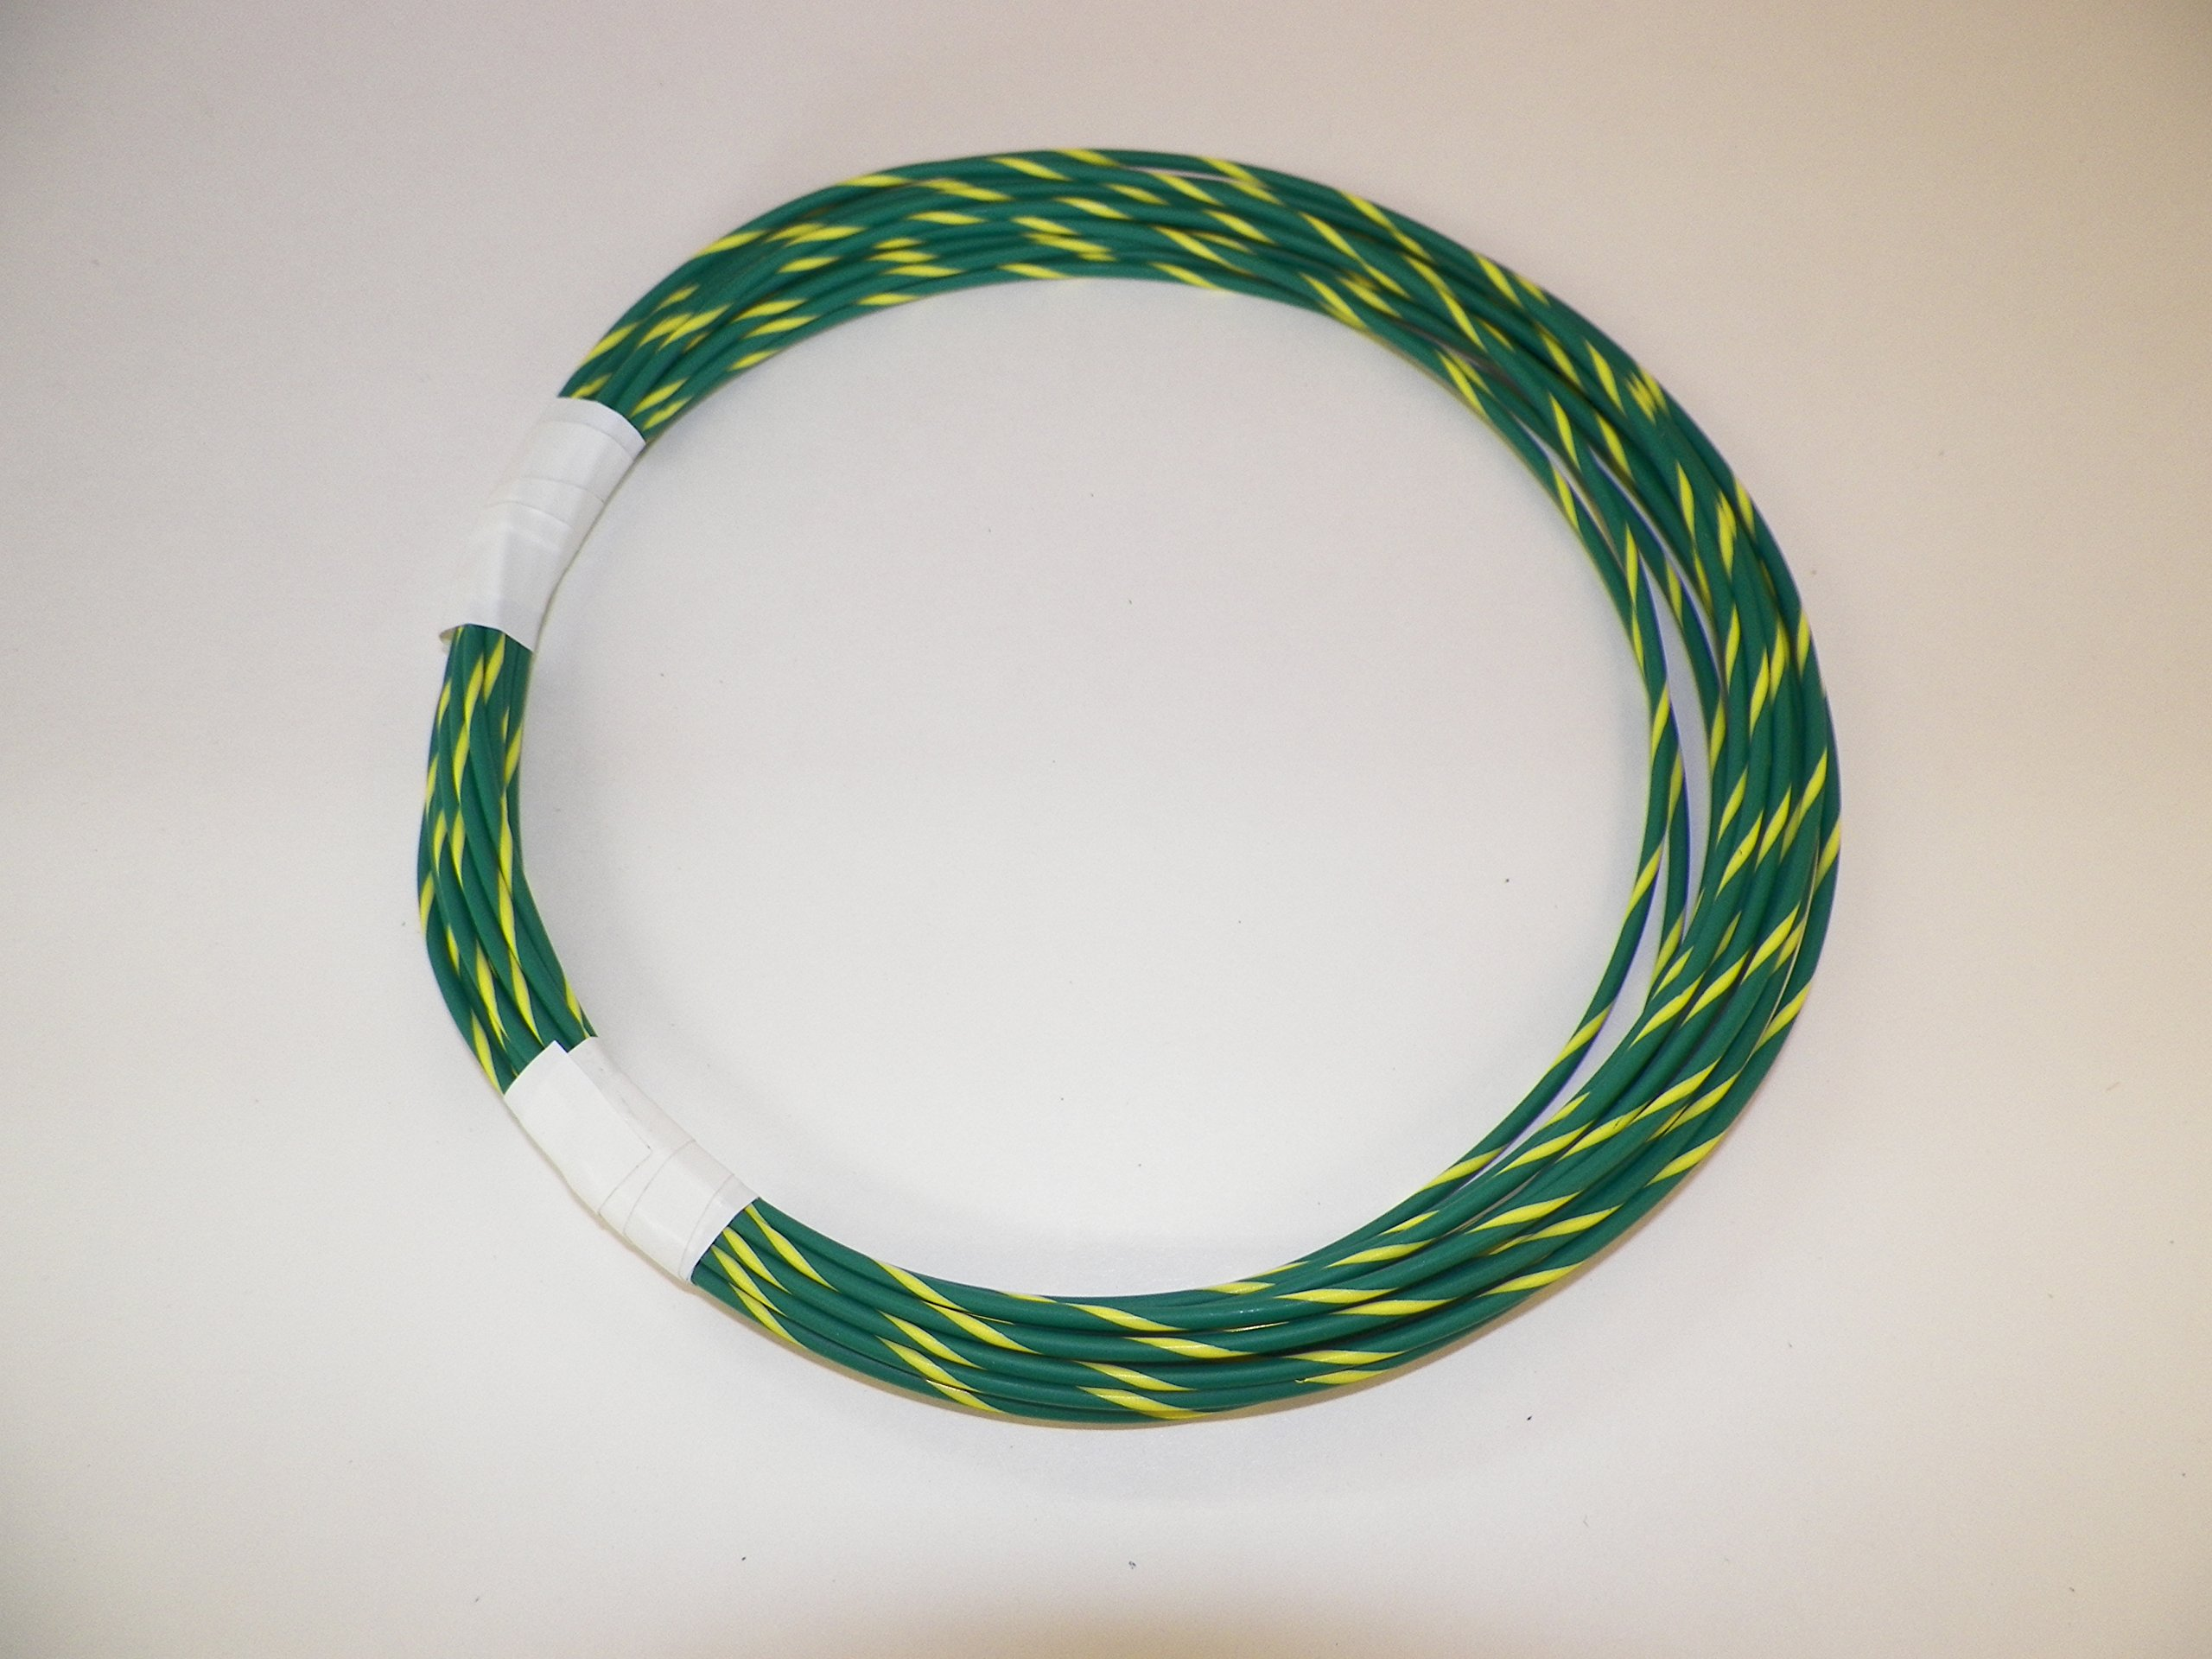 18 Ga Awg Green/Yellow Striped Automotive Truck Motorcycle General Purpose GXL Wire .94 O.D. 25' Superior Abrasion Resistance, High Heat, Resist grease,Oil, Gasoline,Acids